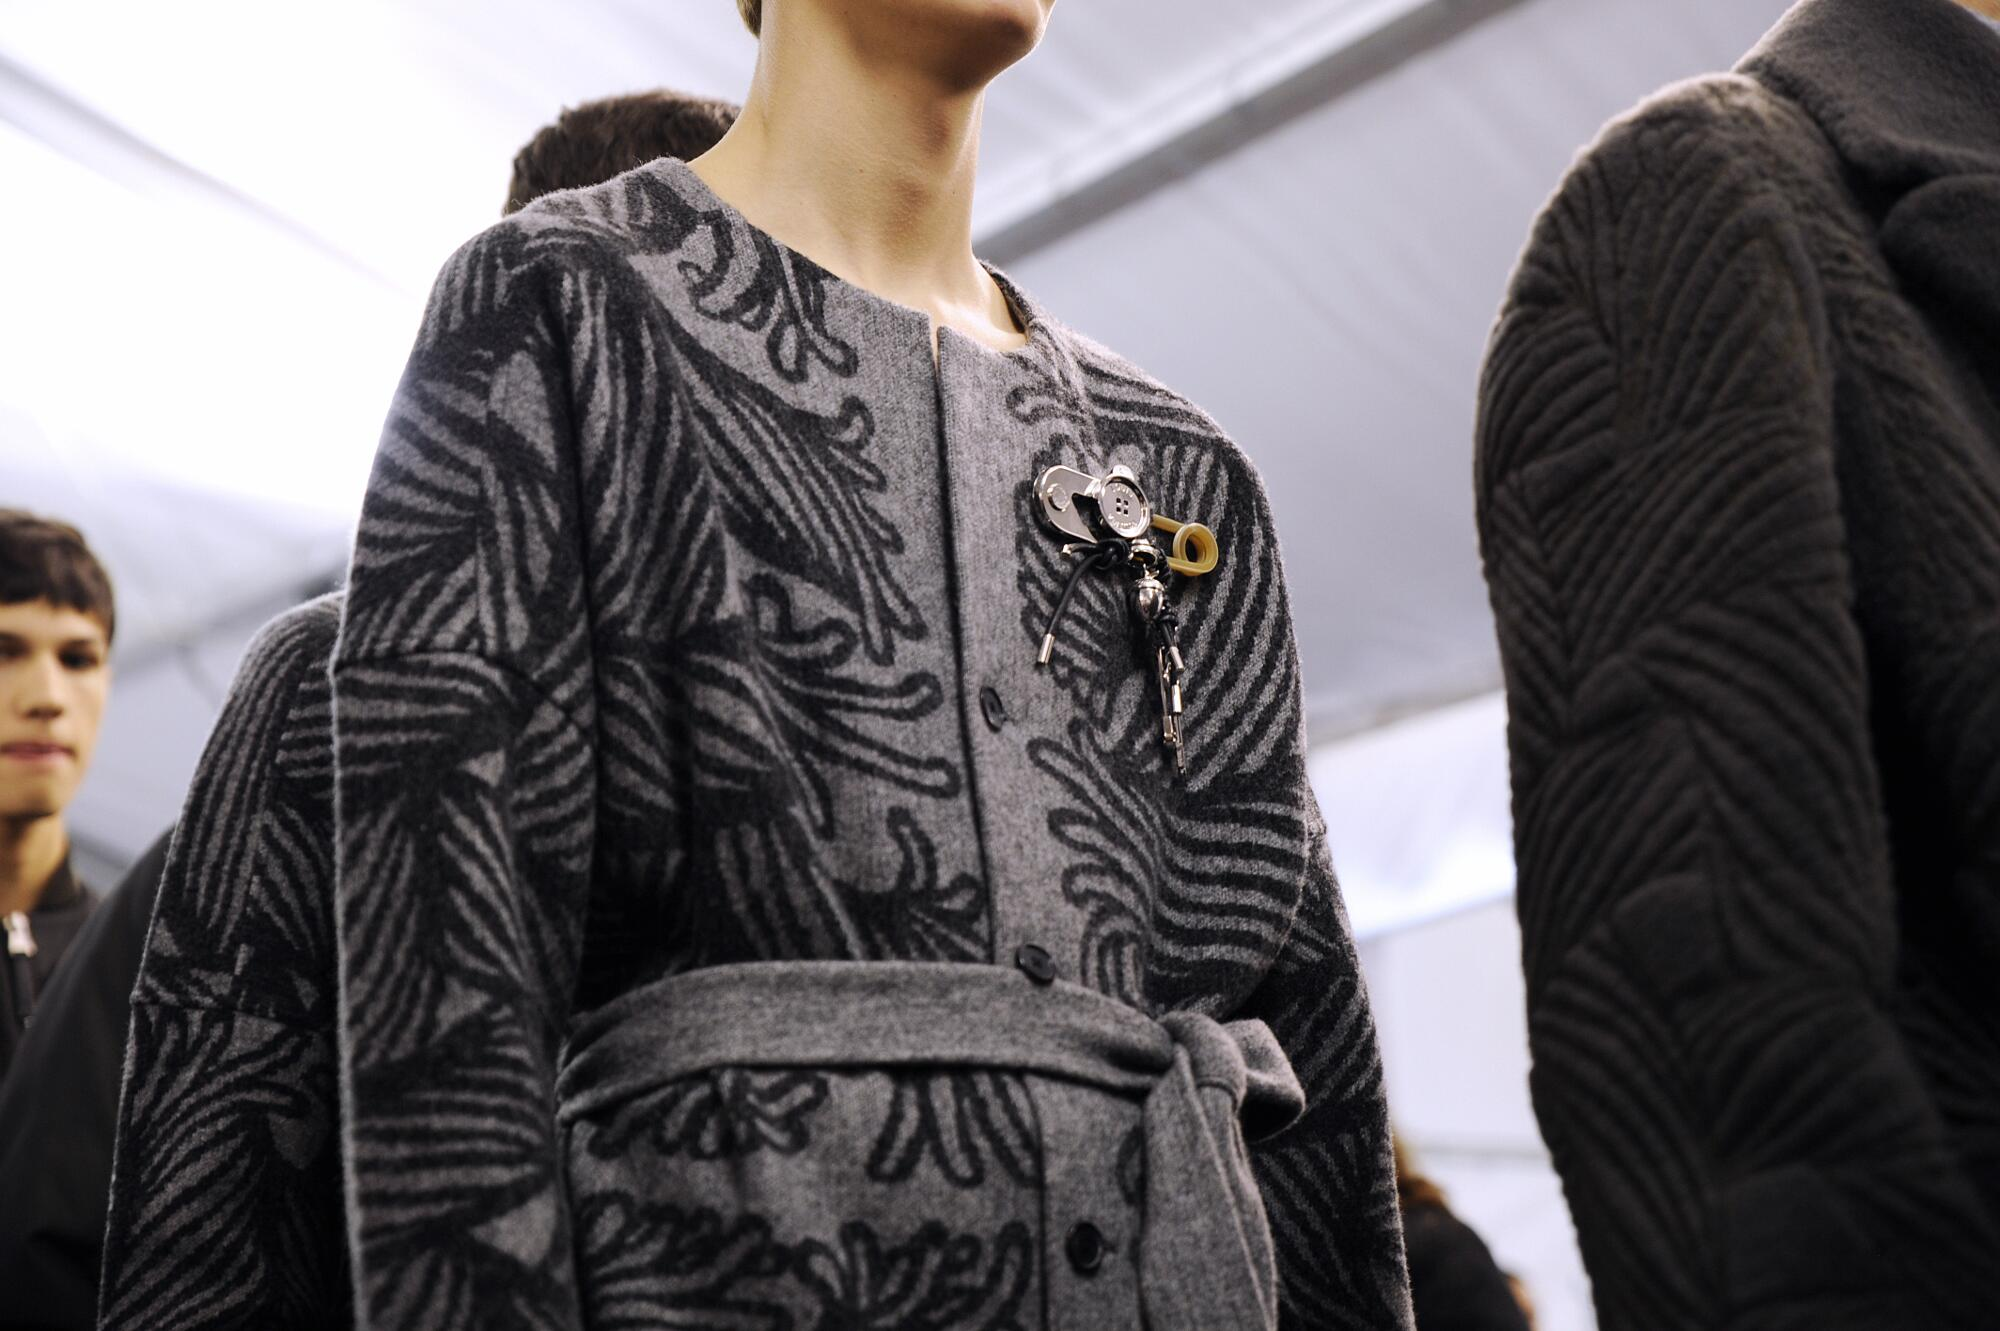 Backstage Man Model Louis Vuitton Winter 2015